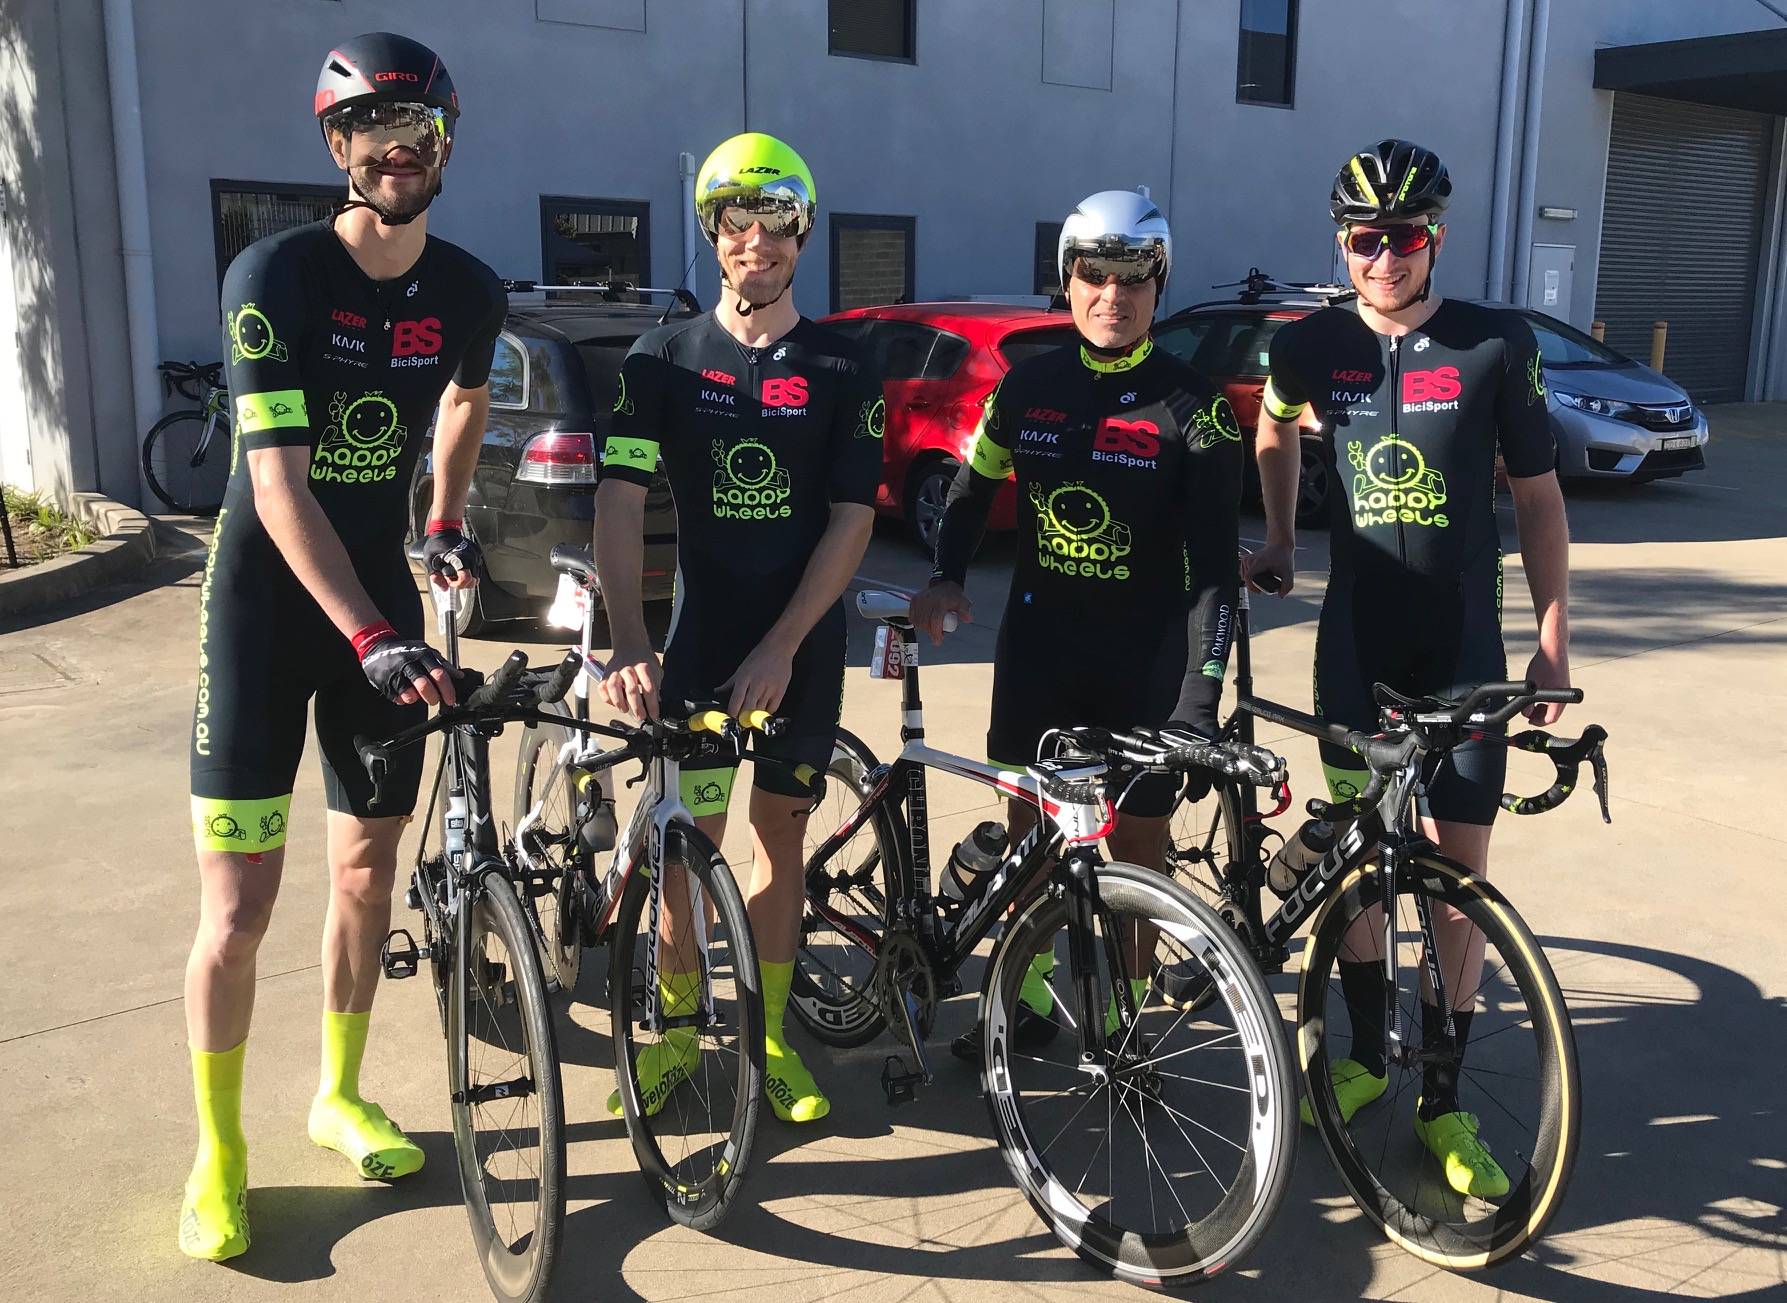 Nowra Team Time Trial Championships @ 21 July - The BiciSport Happy Wheels team finished 5th in the Sassfras Challenge. L to R ... Will Peters, Patrick Conway, Dominic Zumbo & Conor Tarlington